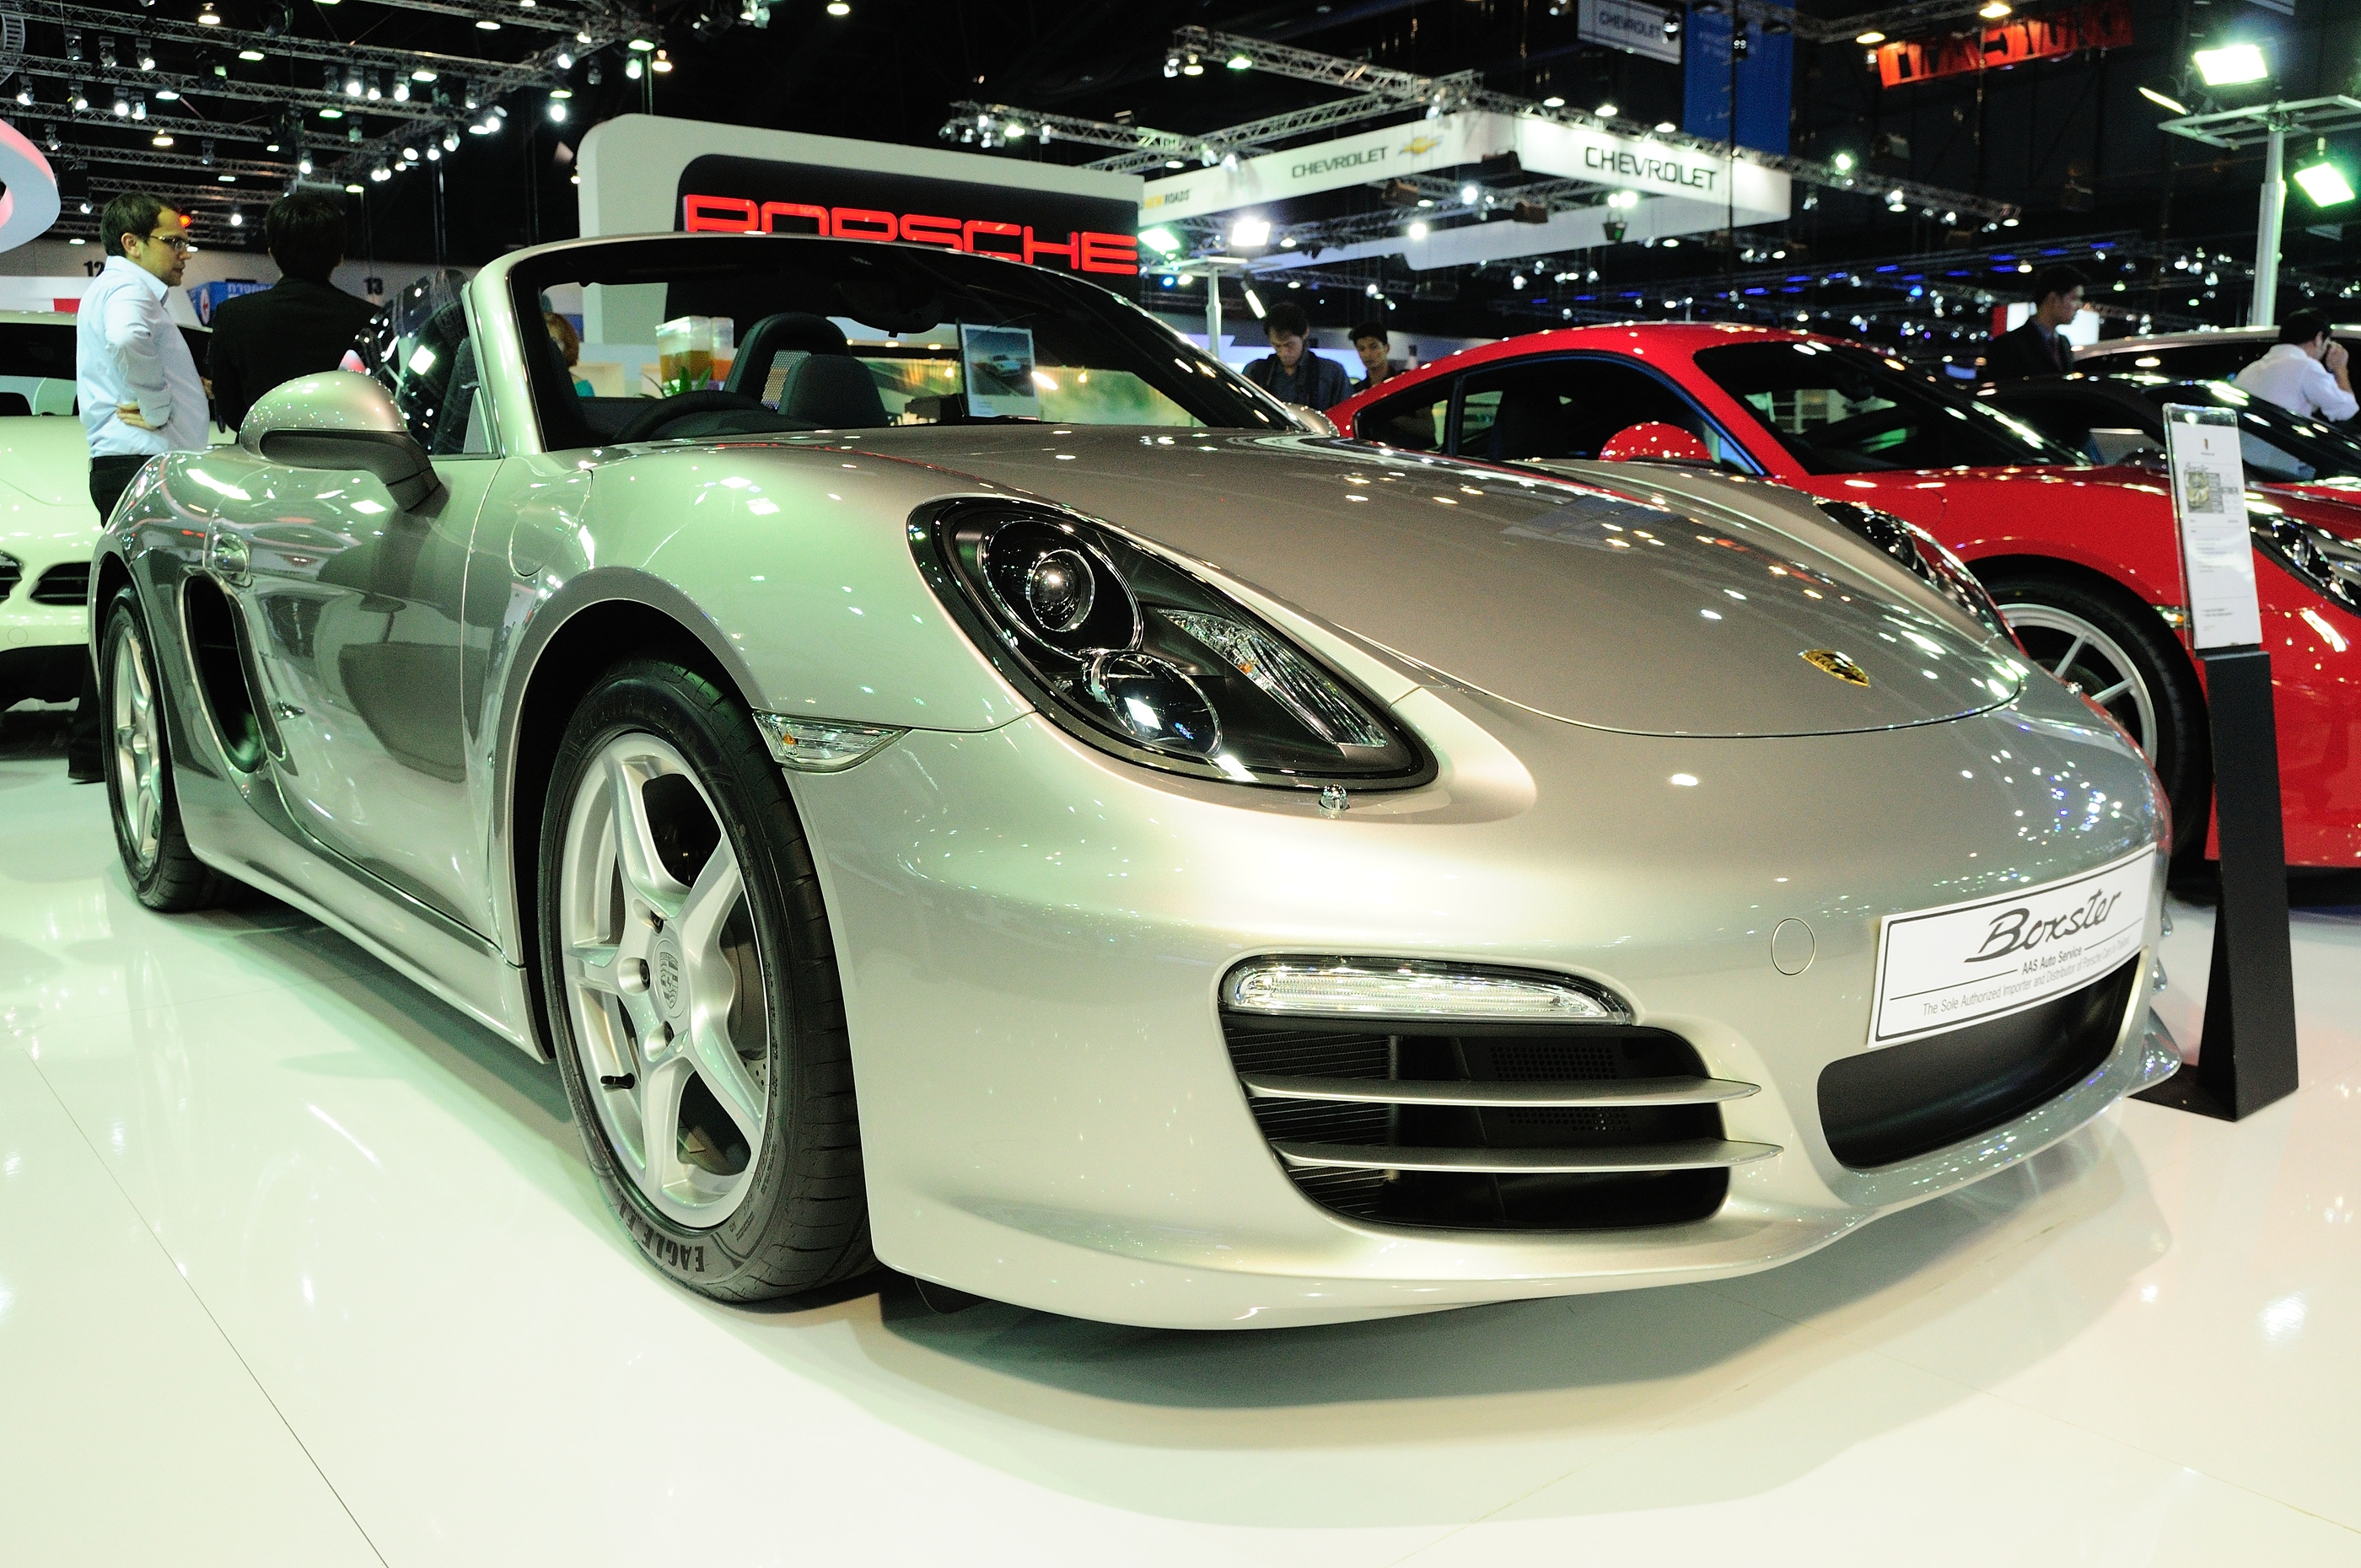 BKK - NOV 28: PORSCHE BOXSTER ON DISPLAY AT THAILAND INTERNATIONAL MOTOR EXPO 2013 ON NOV 28, 2013 I BY THAMPAPON1